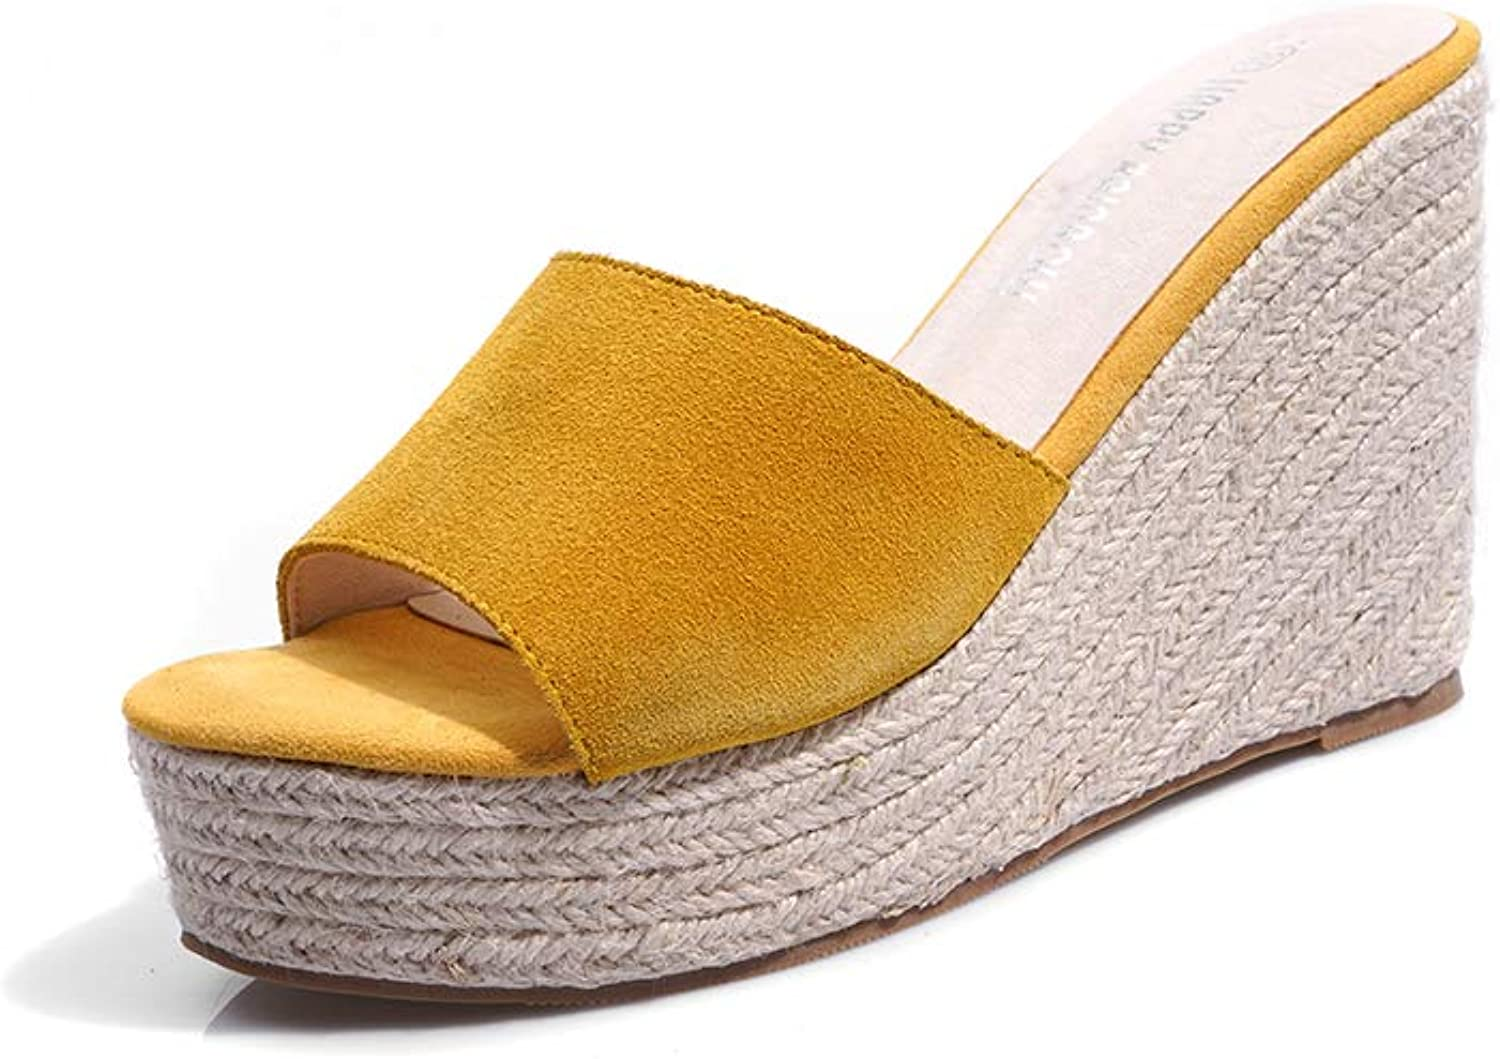 Women's Sandals - Wedges with High Heel Platform Thick Base Scrub Leather Hemp Sandals and Slippers